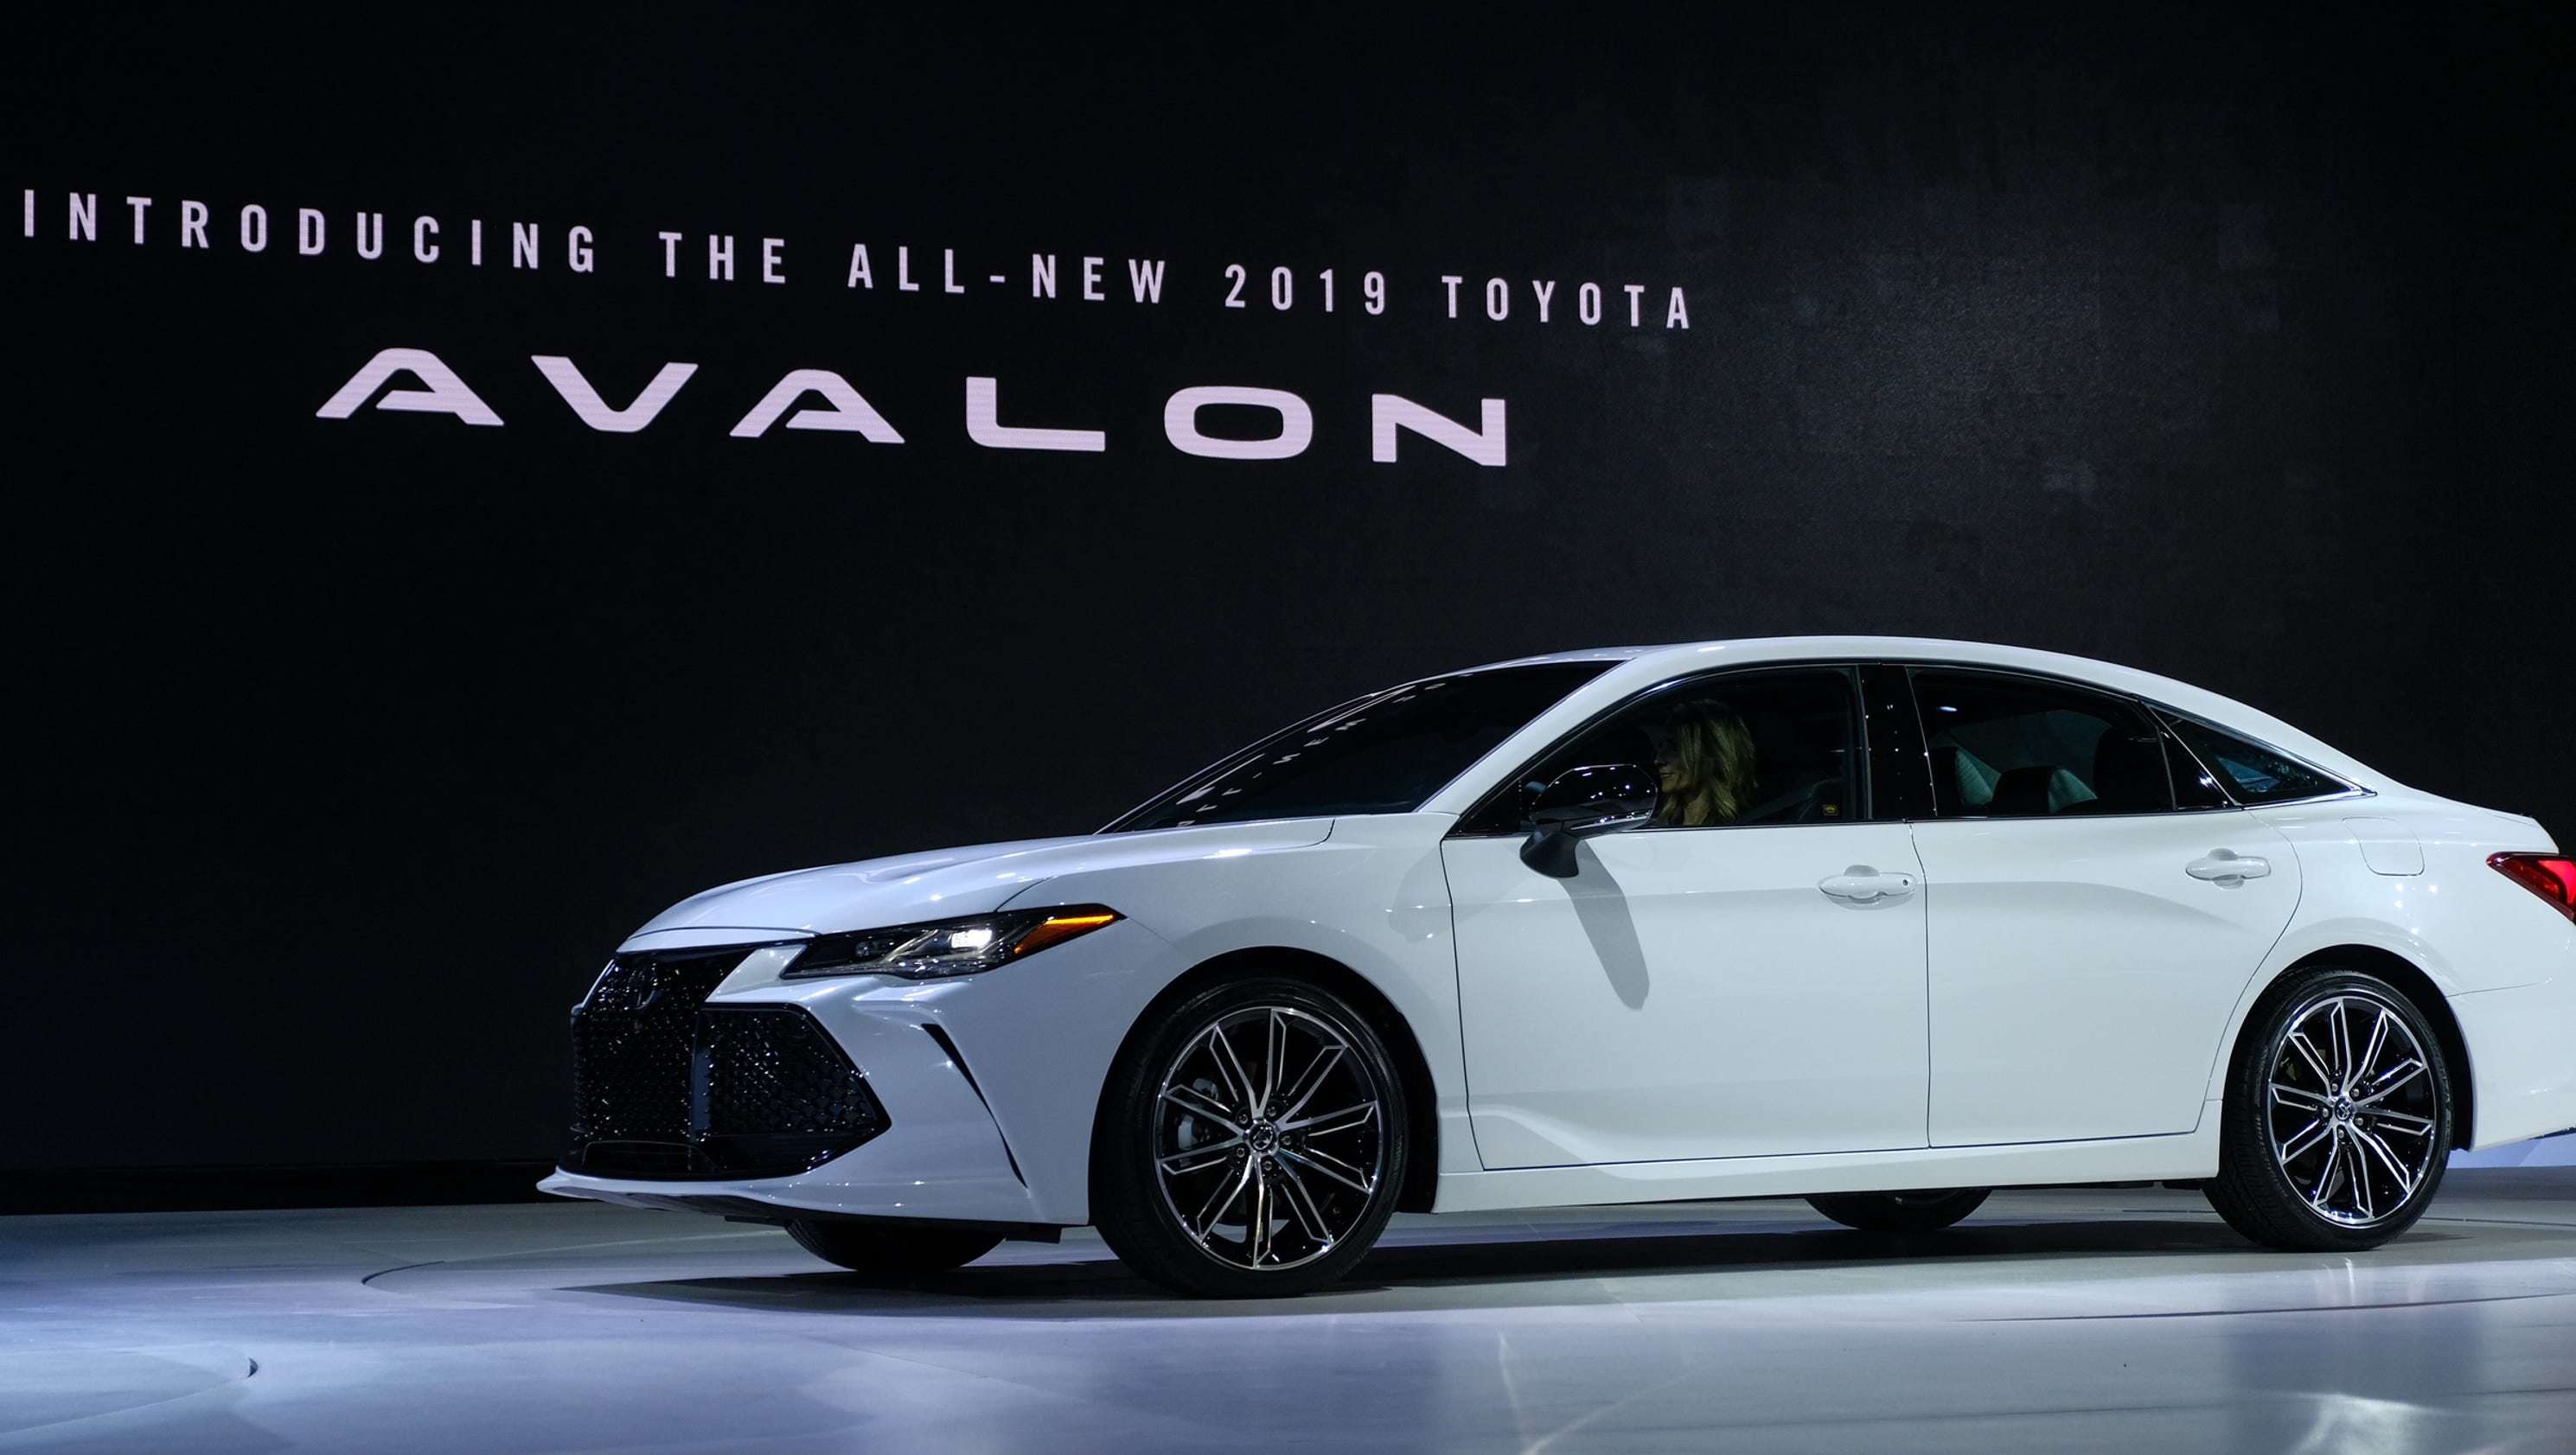 2019 Toyota Avalon S Aggressive Style Pairs With Safety And Efficiency